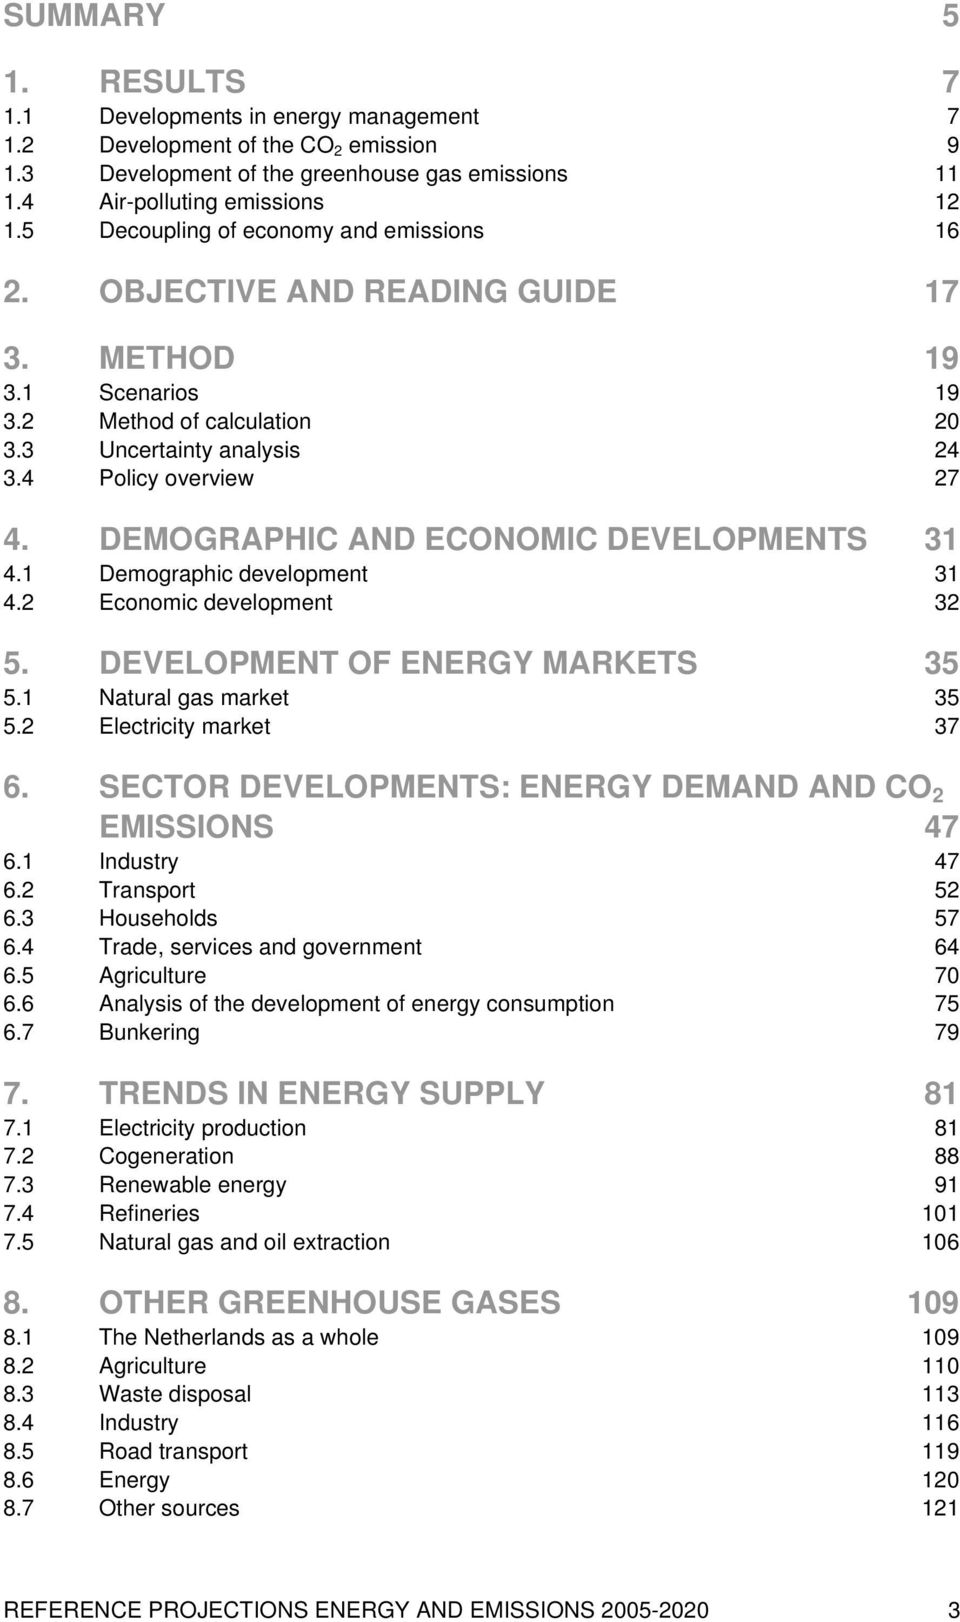 DEMOGRAPHIC AND ECONOMIC DEVELOPMENTS 31 4.1 Demographic development 31 4.2 Economic development 32 5. DEVELOPMENT OF ENERGY MARKETS 35 5.1 Natural gas market 35 5.2 Electricity market 37 6.